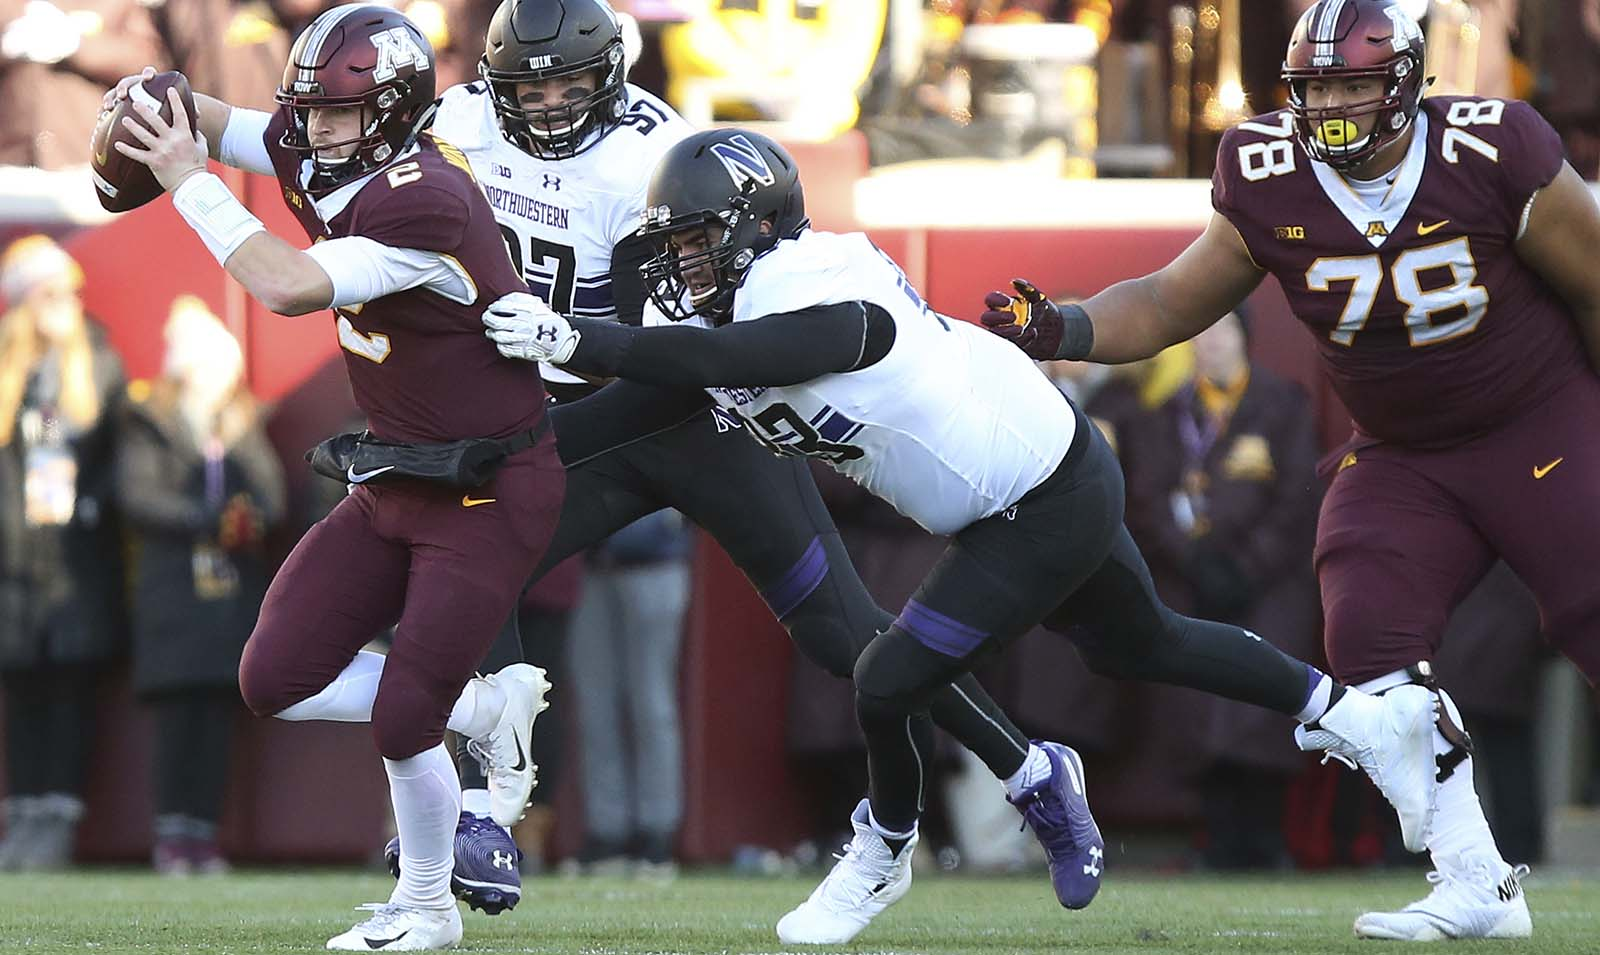 Minnesota quarterback Tanner Morgan, left, avoids a sack by Northwestern's Ben Oxley during an NCAA college football game Saturday, Nov. 17, 2018, in Minneapolis. Northwestern won 24-14. (AP Photo/Stacy Bengs)